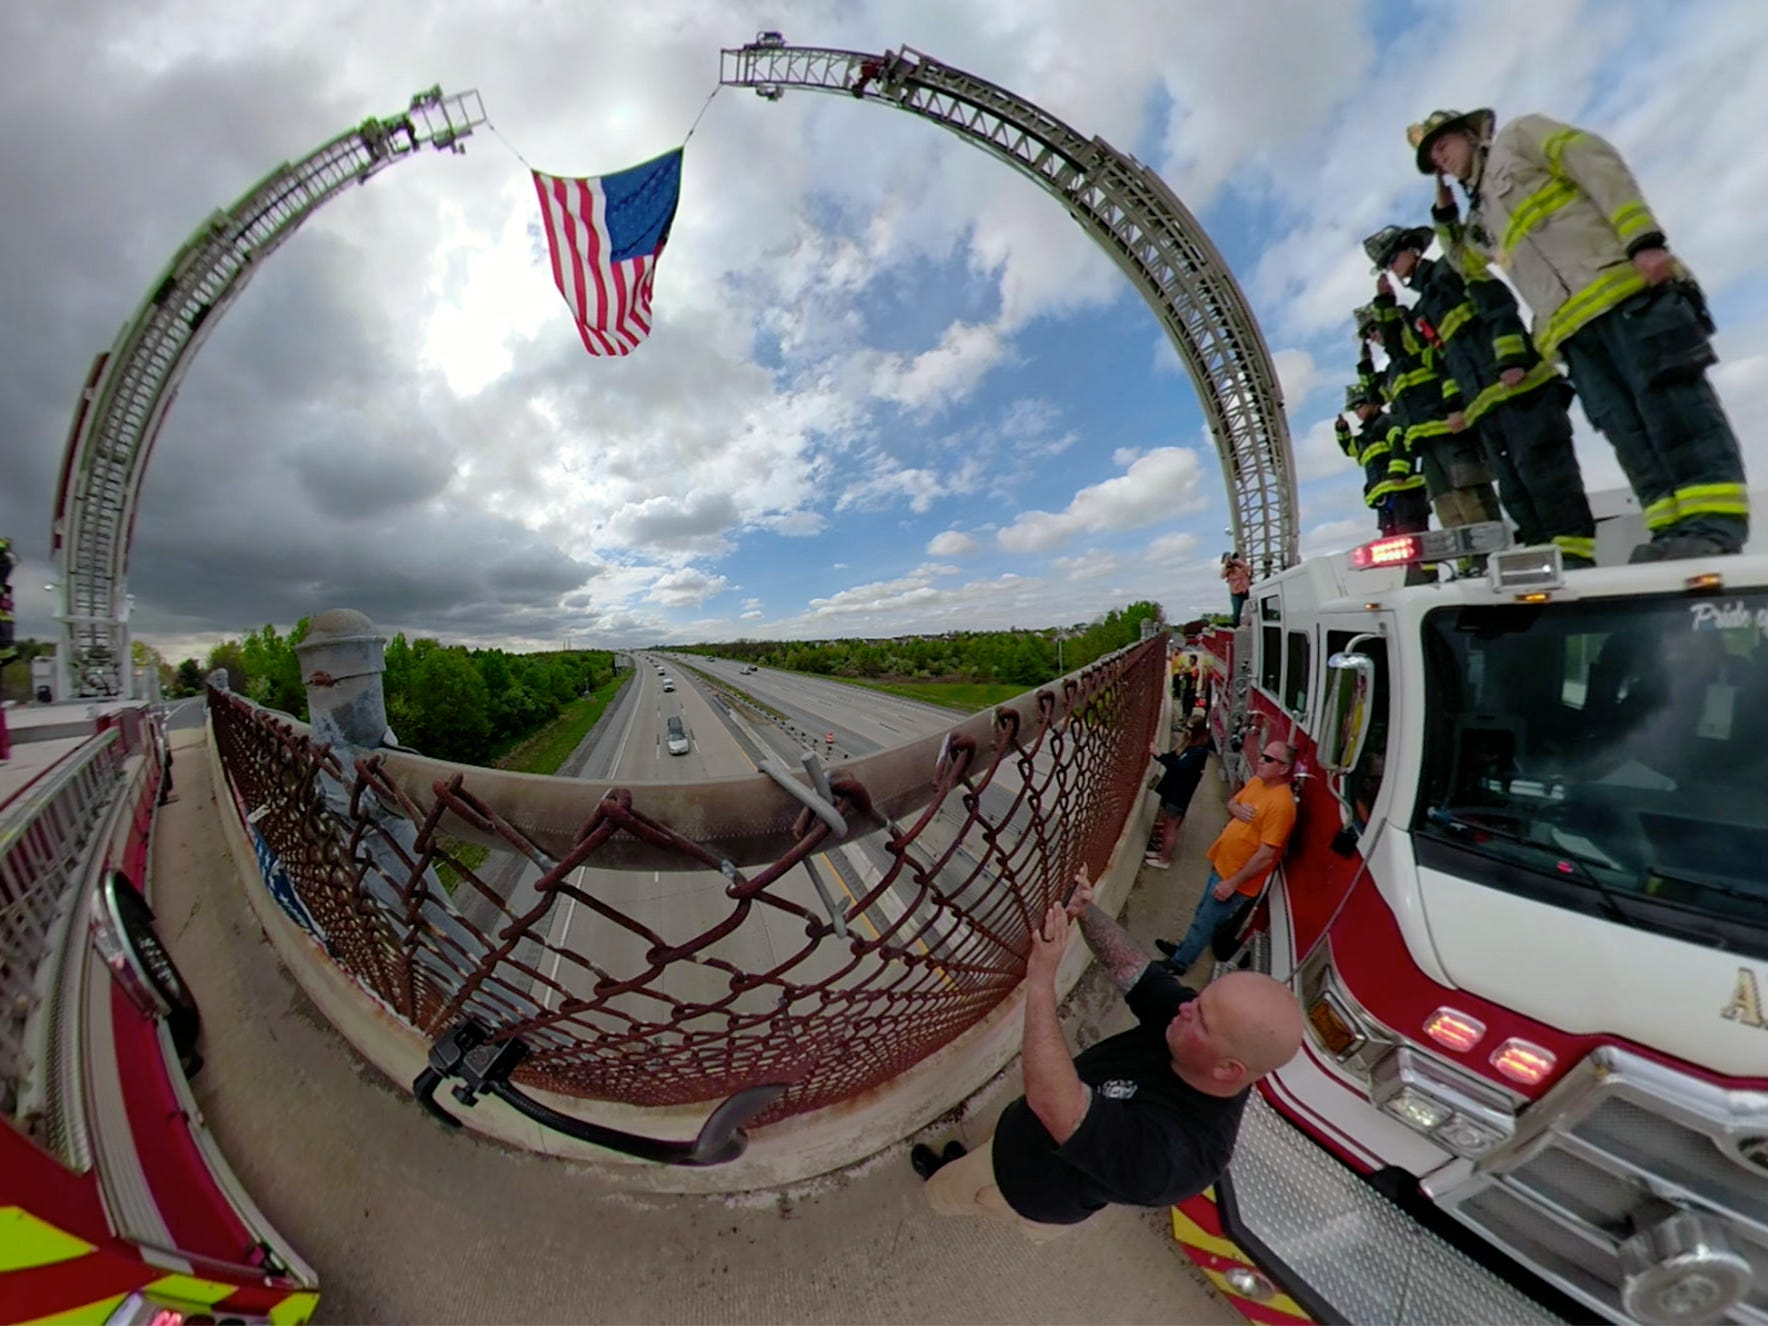 Firefighters salute Marine SSgt Christopher Slutman's funeral procession from the Kirkwood - St. Georges Road overpass above Route 1 in St. George Monday, April 22, 2019.